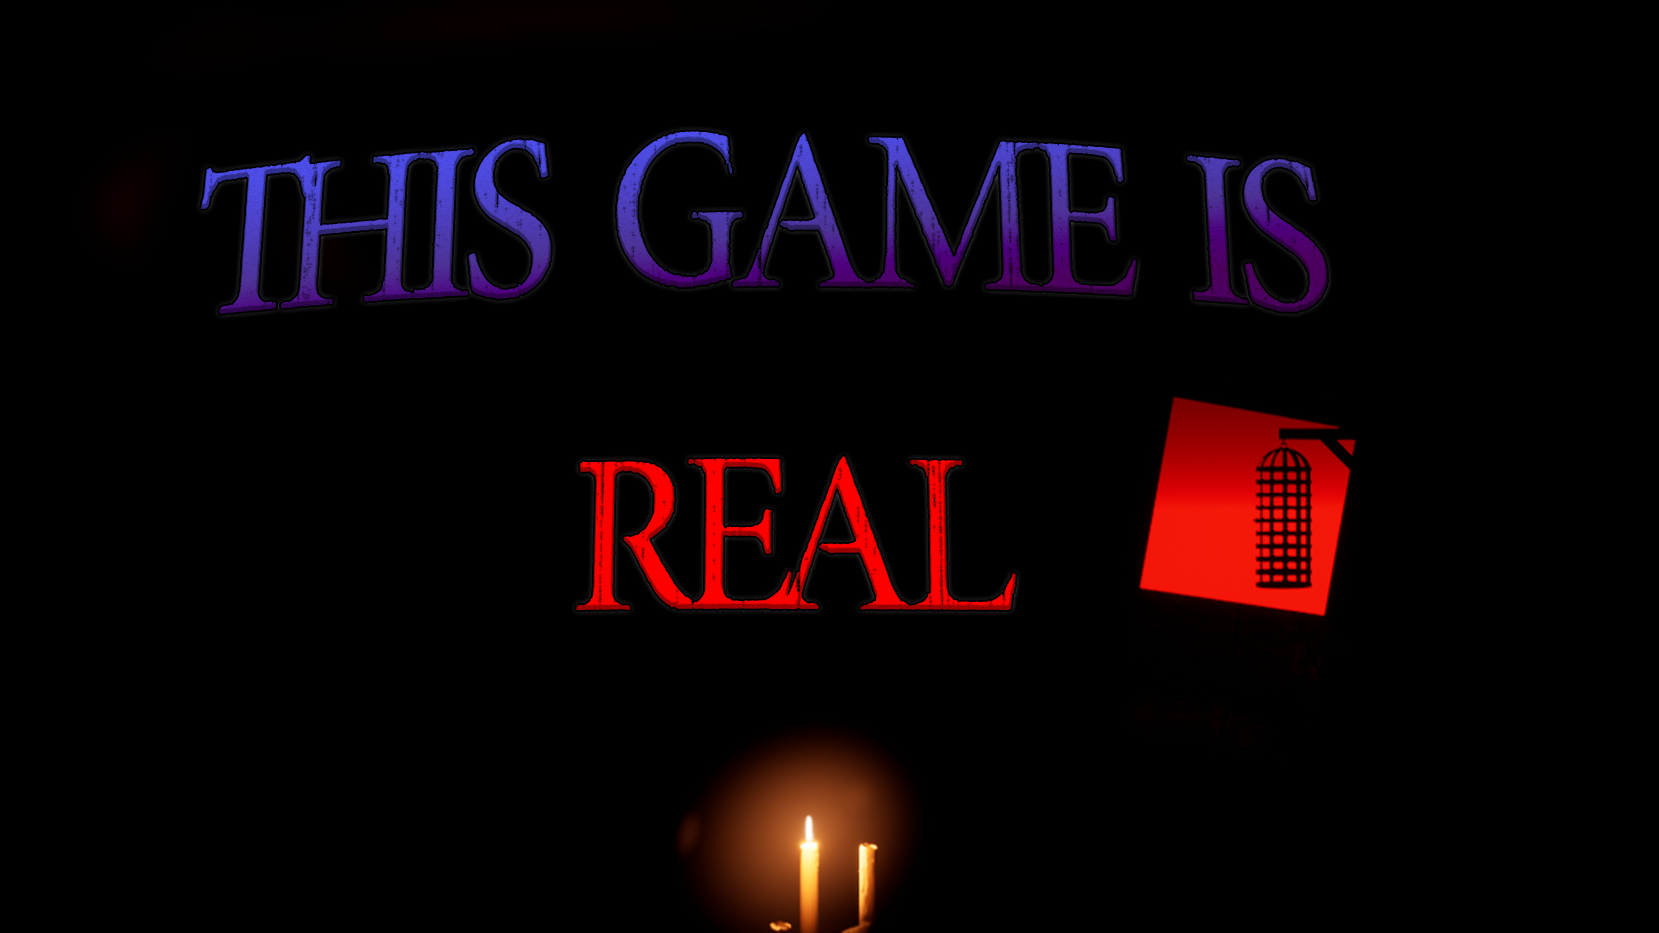 This Game Is Real (Chapter 3 out now!)